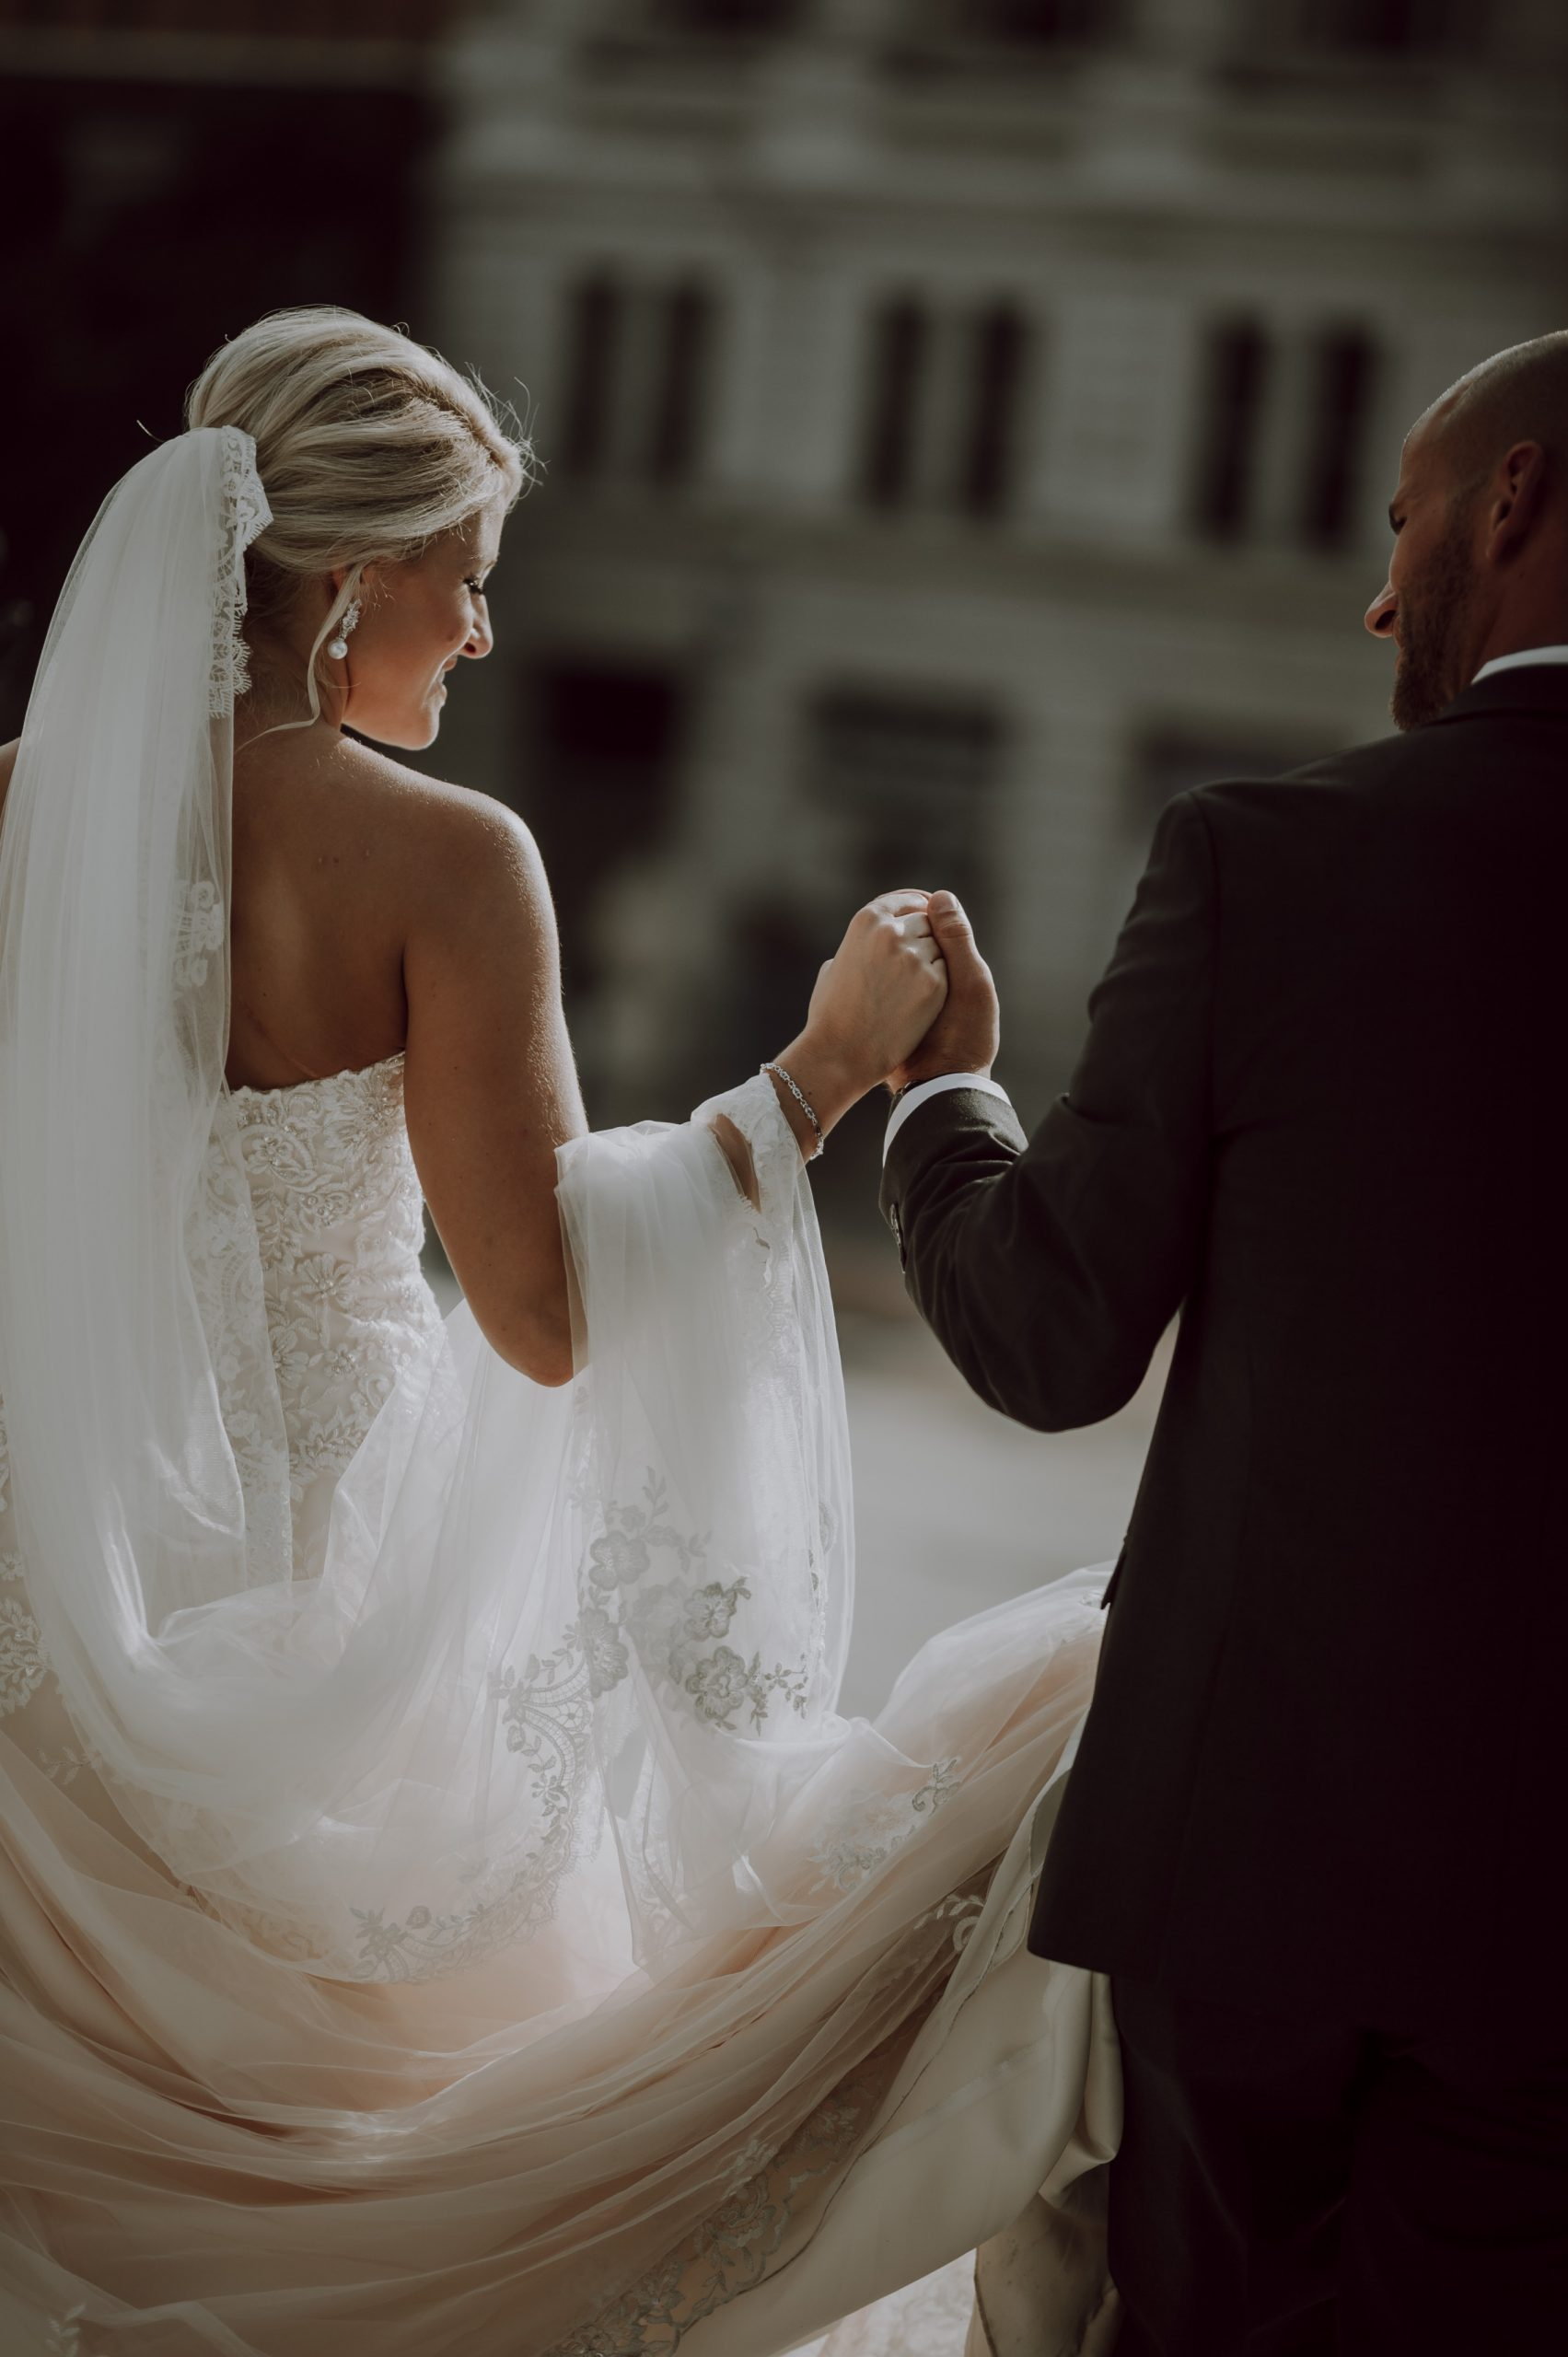 Bride and broom lead each other hand in hand. Captured by Lovefusion Photography at Stock's Manor in Mechanicsburg, PA. Featured on Dream Weddings.